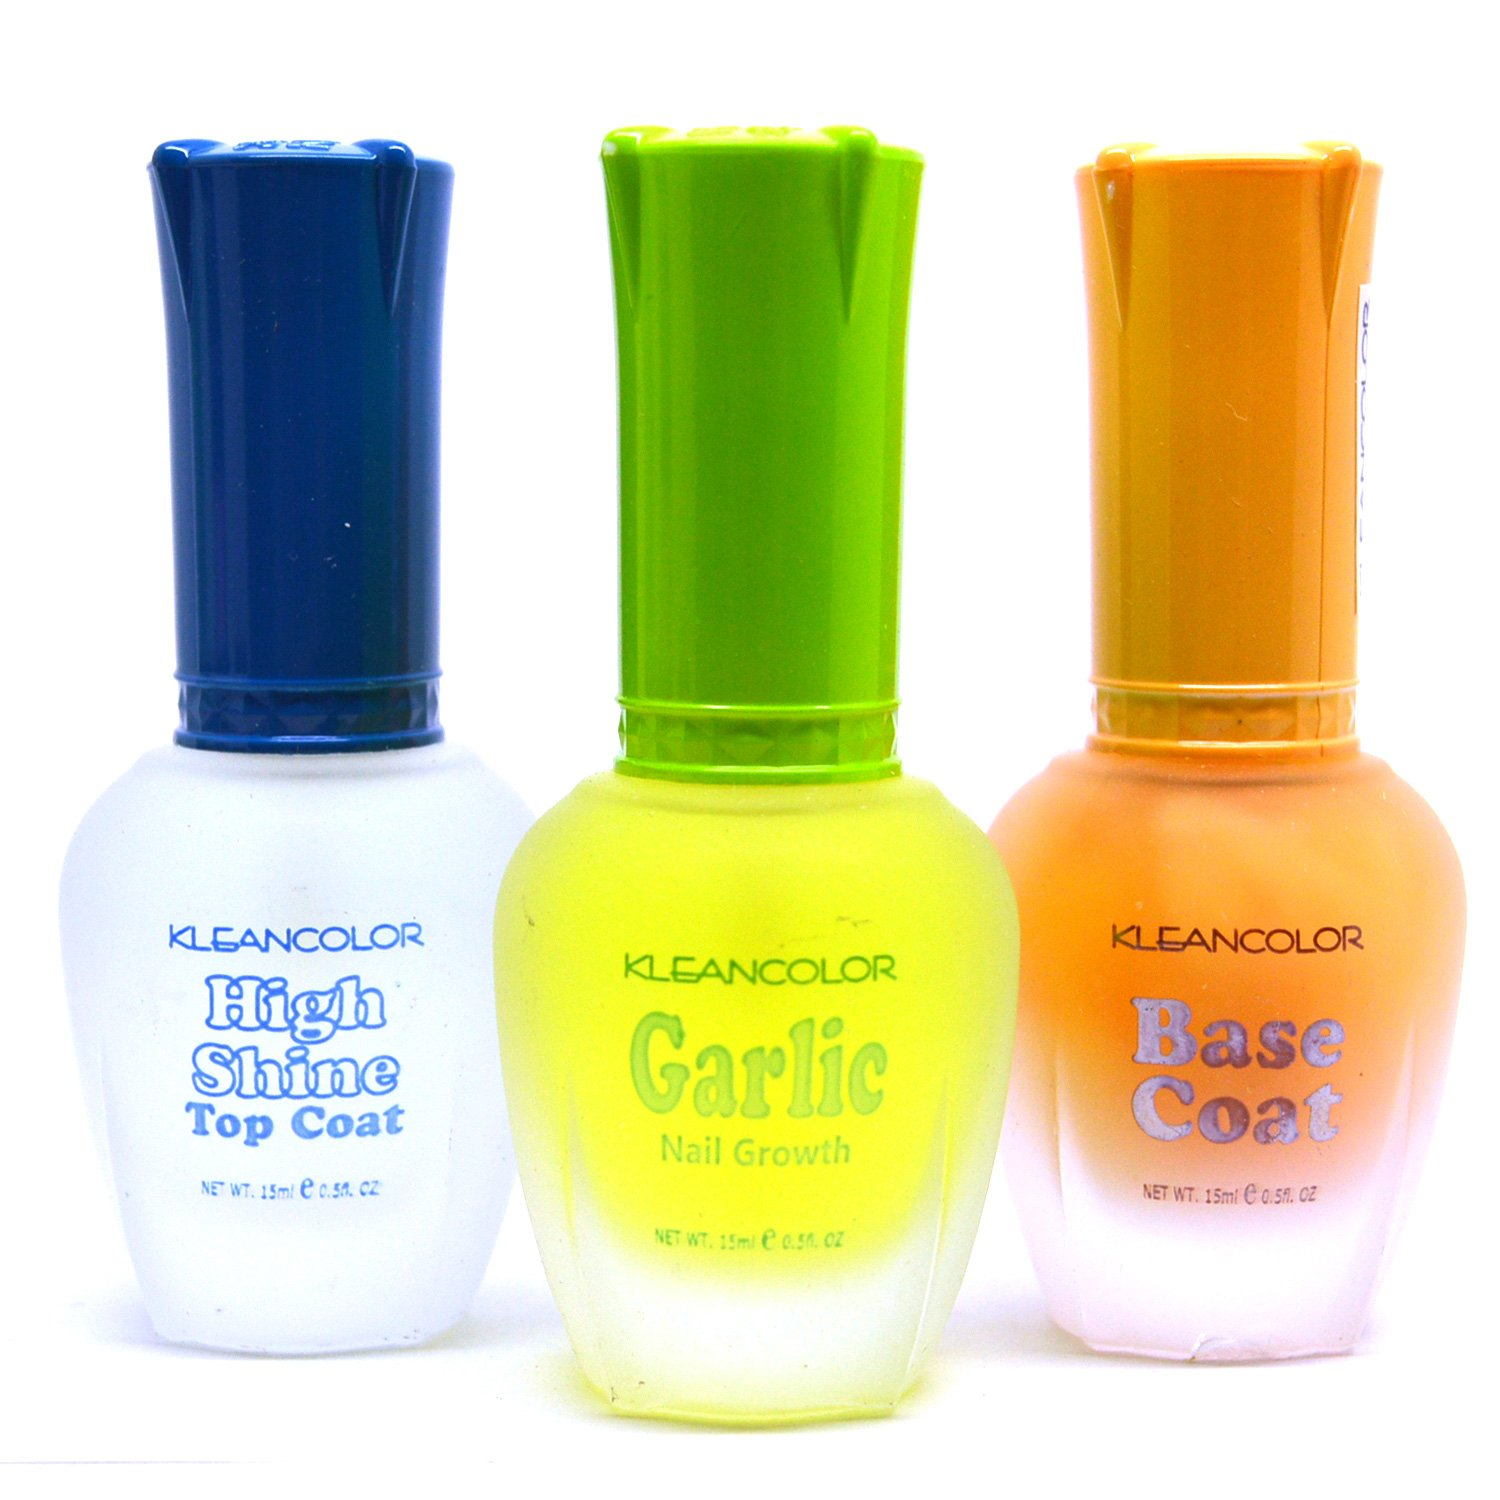 Amazon.com : 3 Kleancolor Nail Polish Top Base Coat Garlic Growth ...